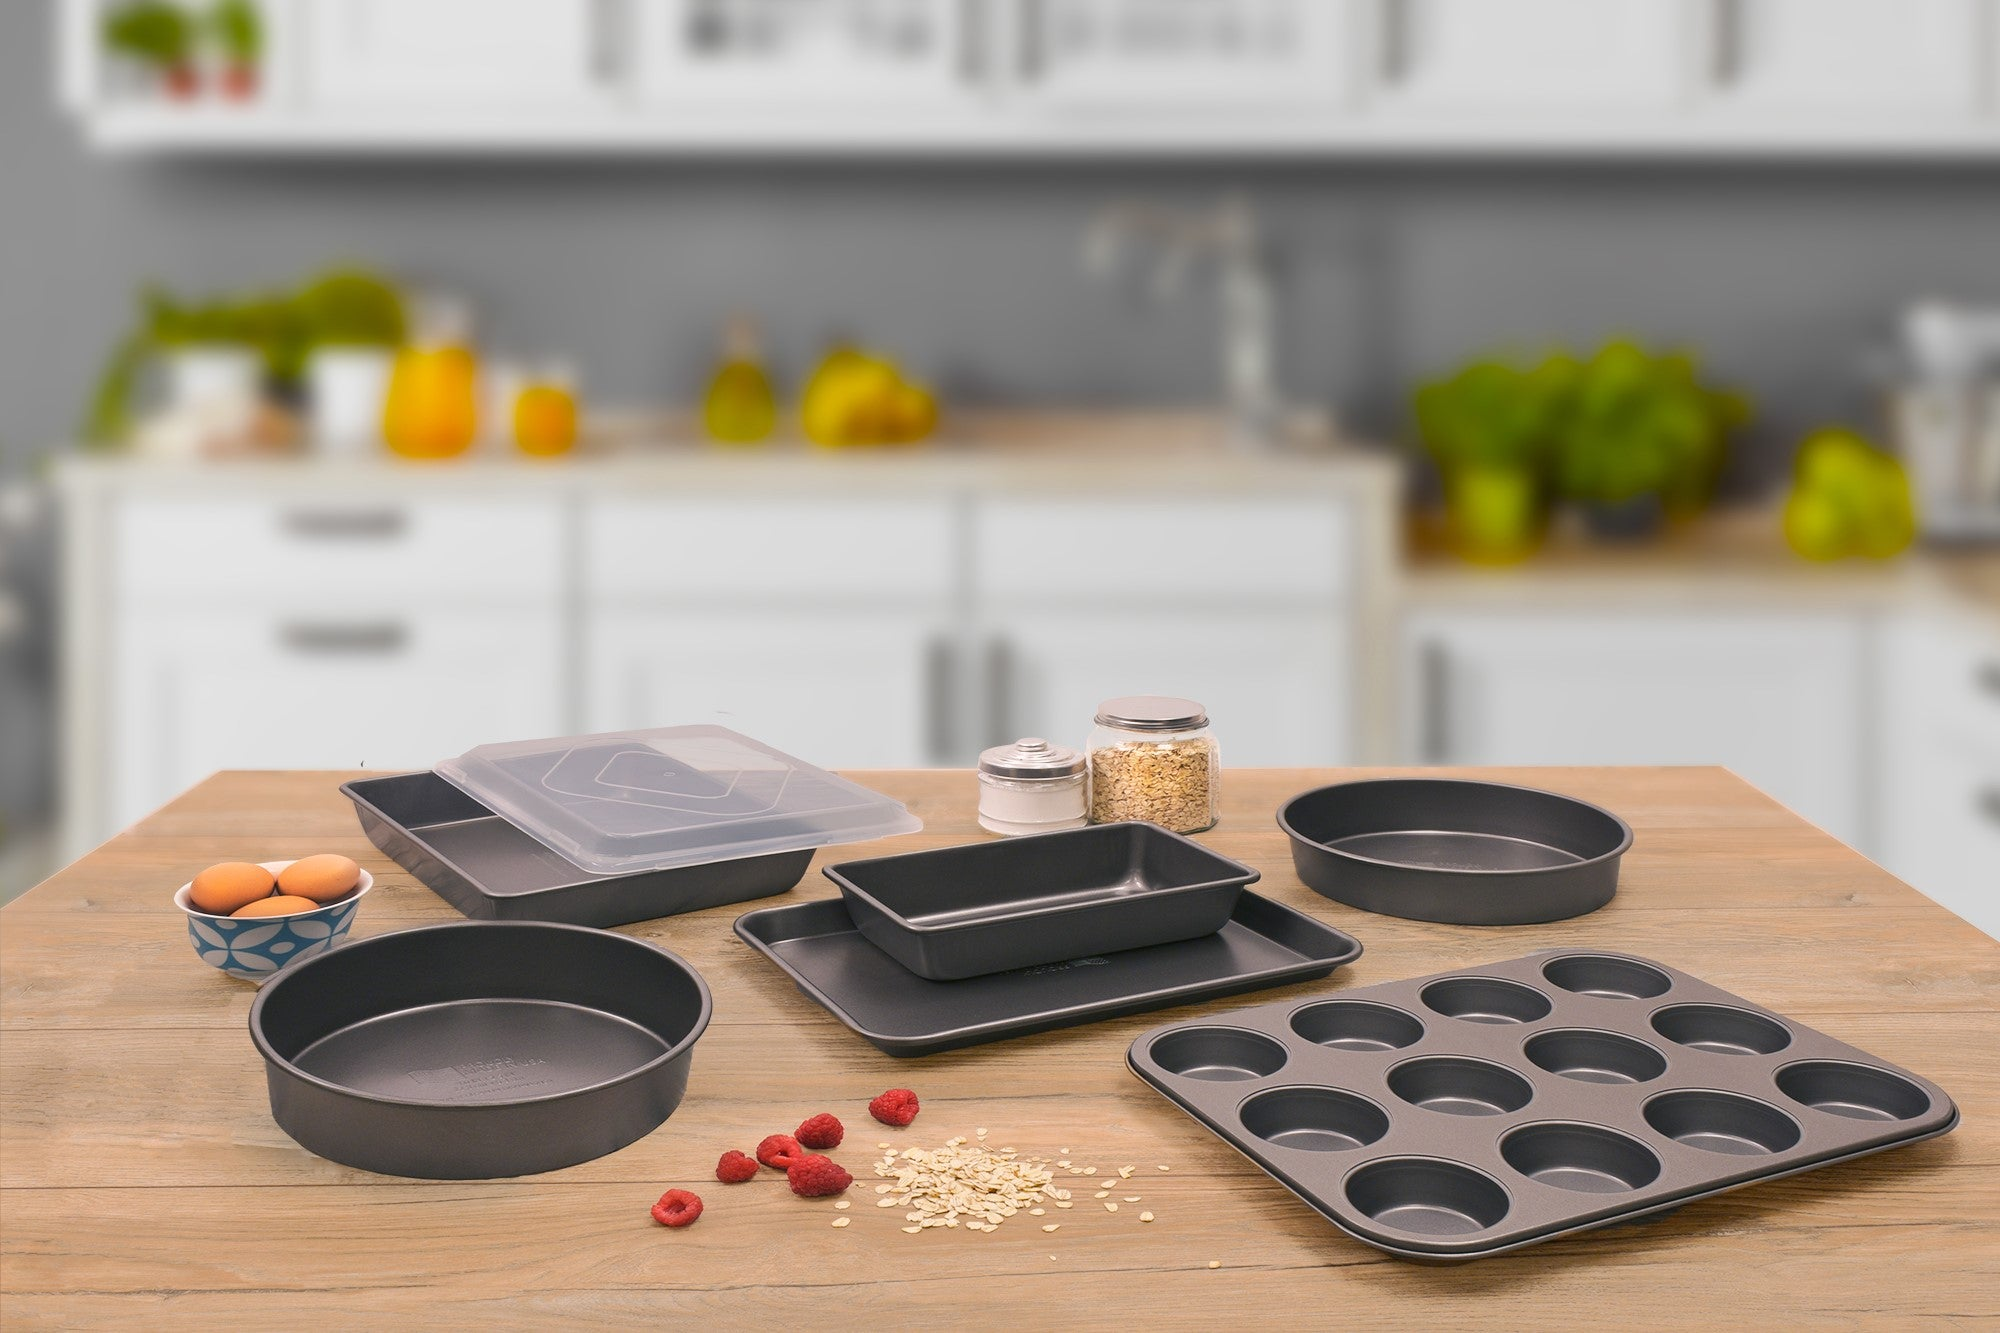 Cupcake/muffin tins, round pans for cakes, pans with lids